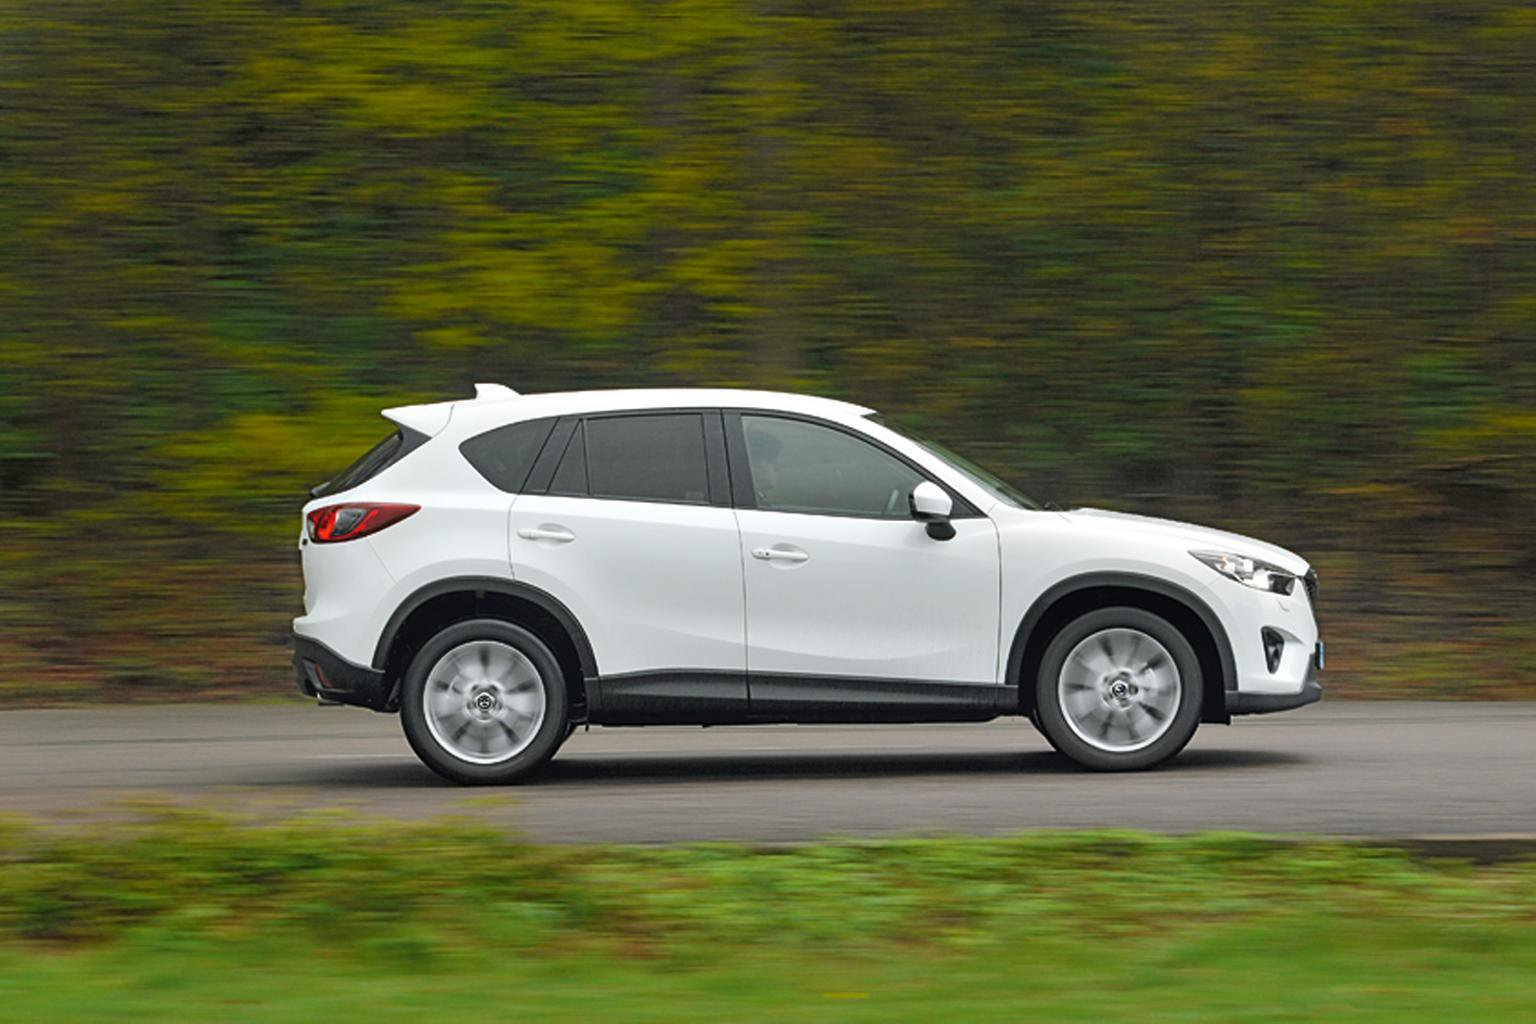 Deal of the Day: Mazda CX-5